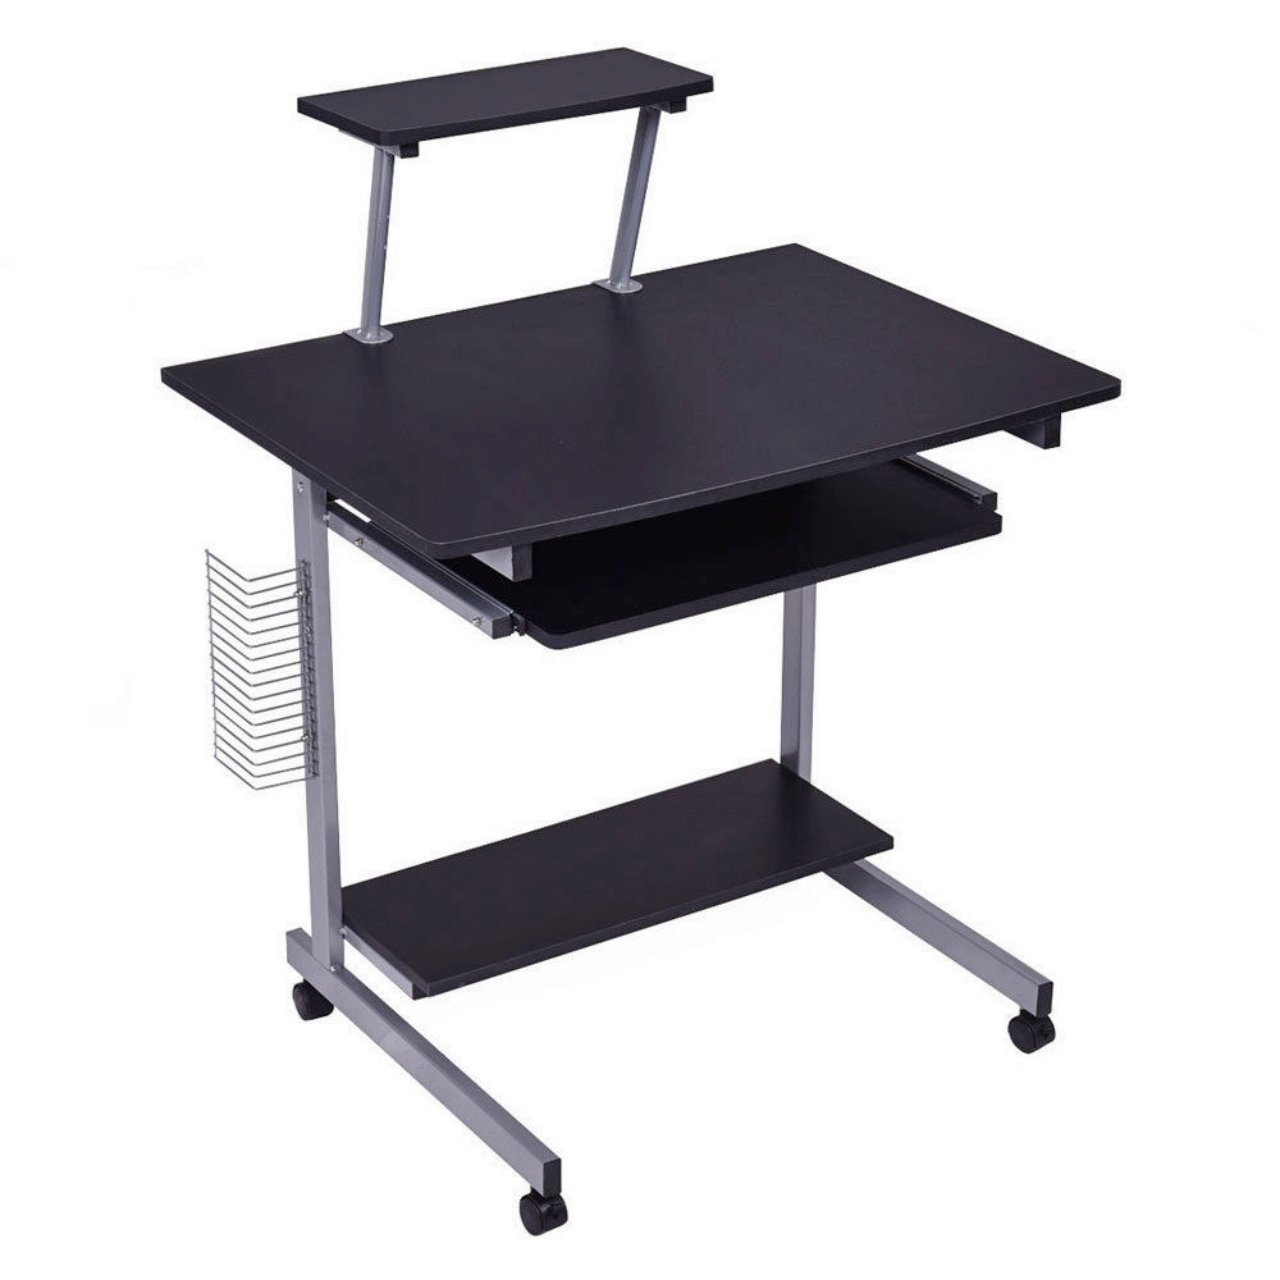 Laptop Notebook Computer Table Stand Portable Desk Rolling Cart Tray Slide-In Keyboard With Shelf - School Home Office Furniture Black #1041